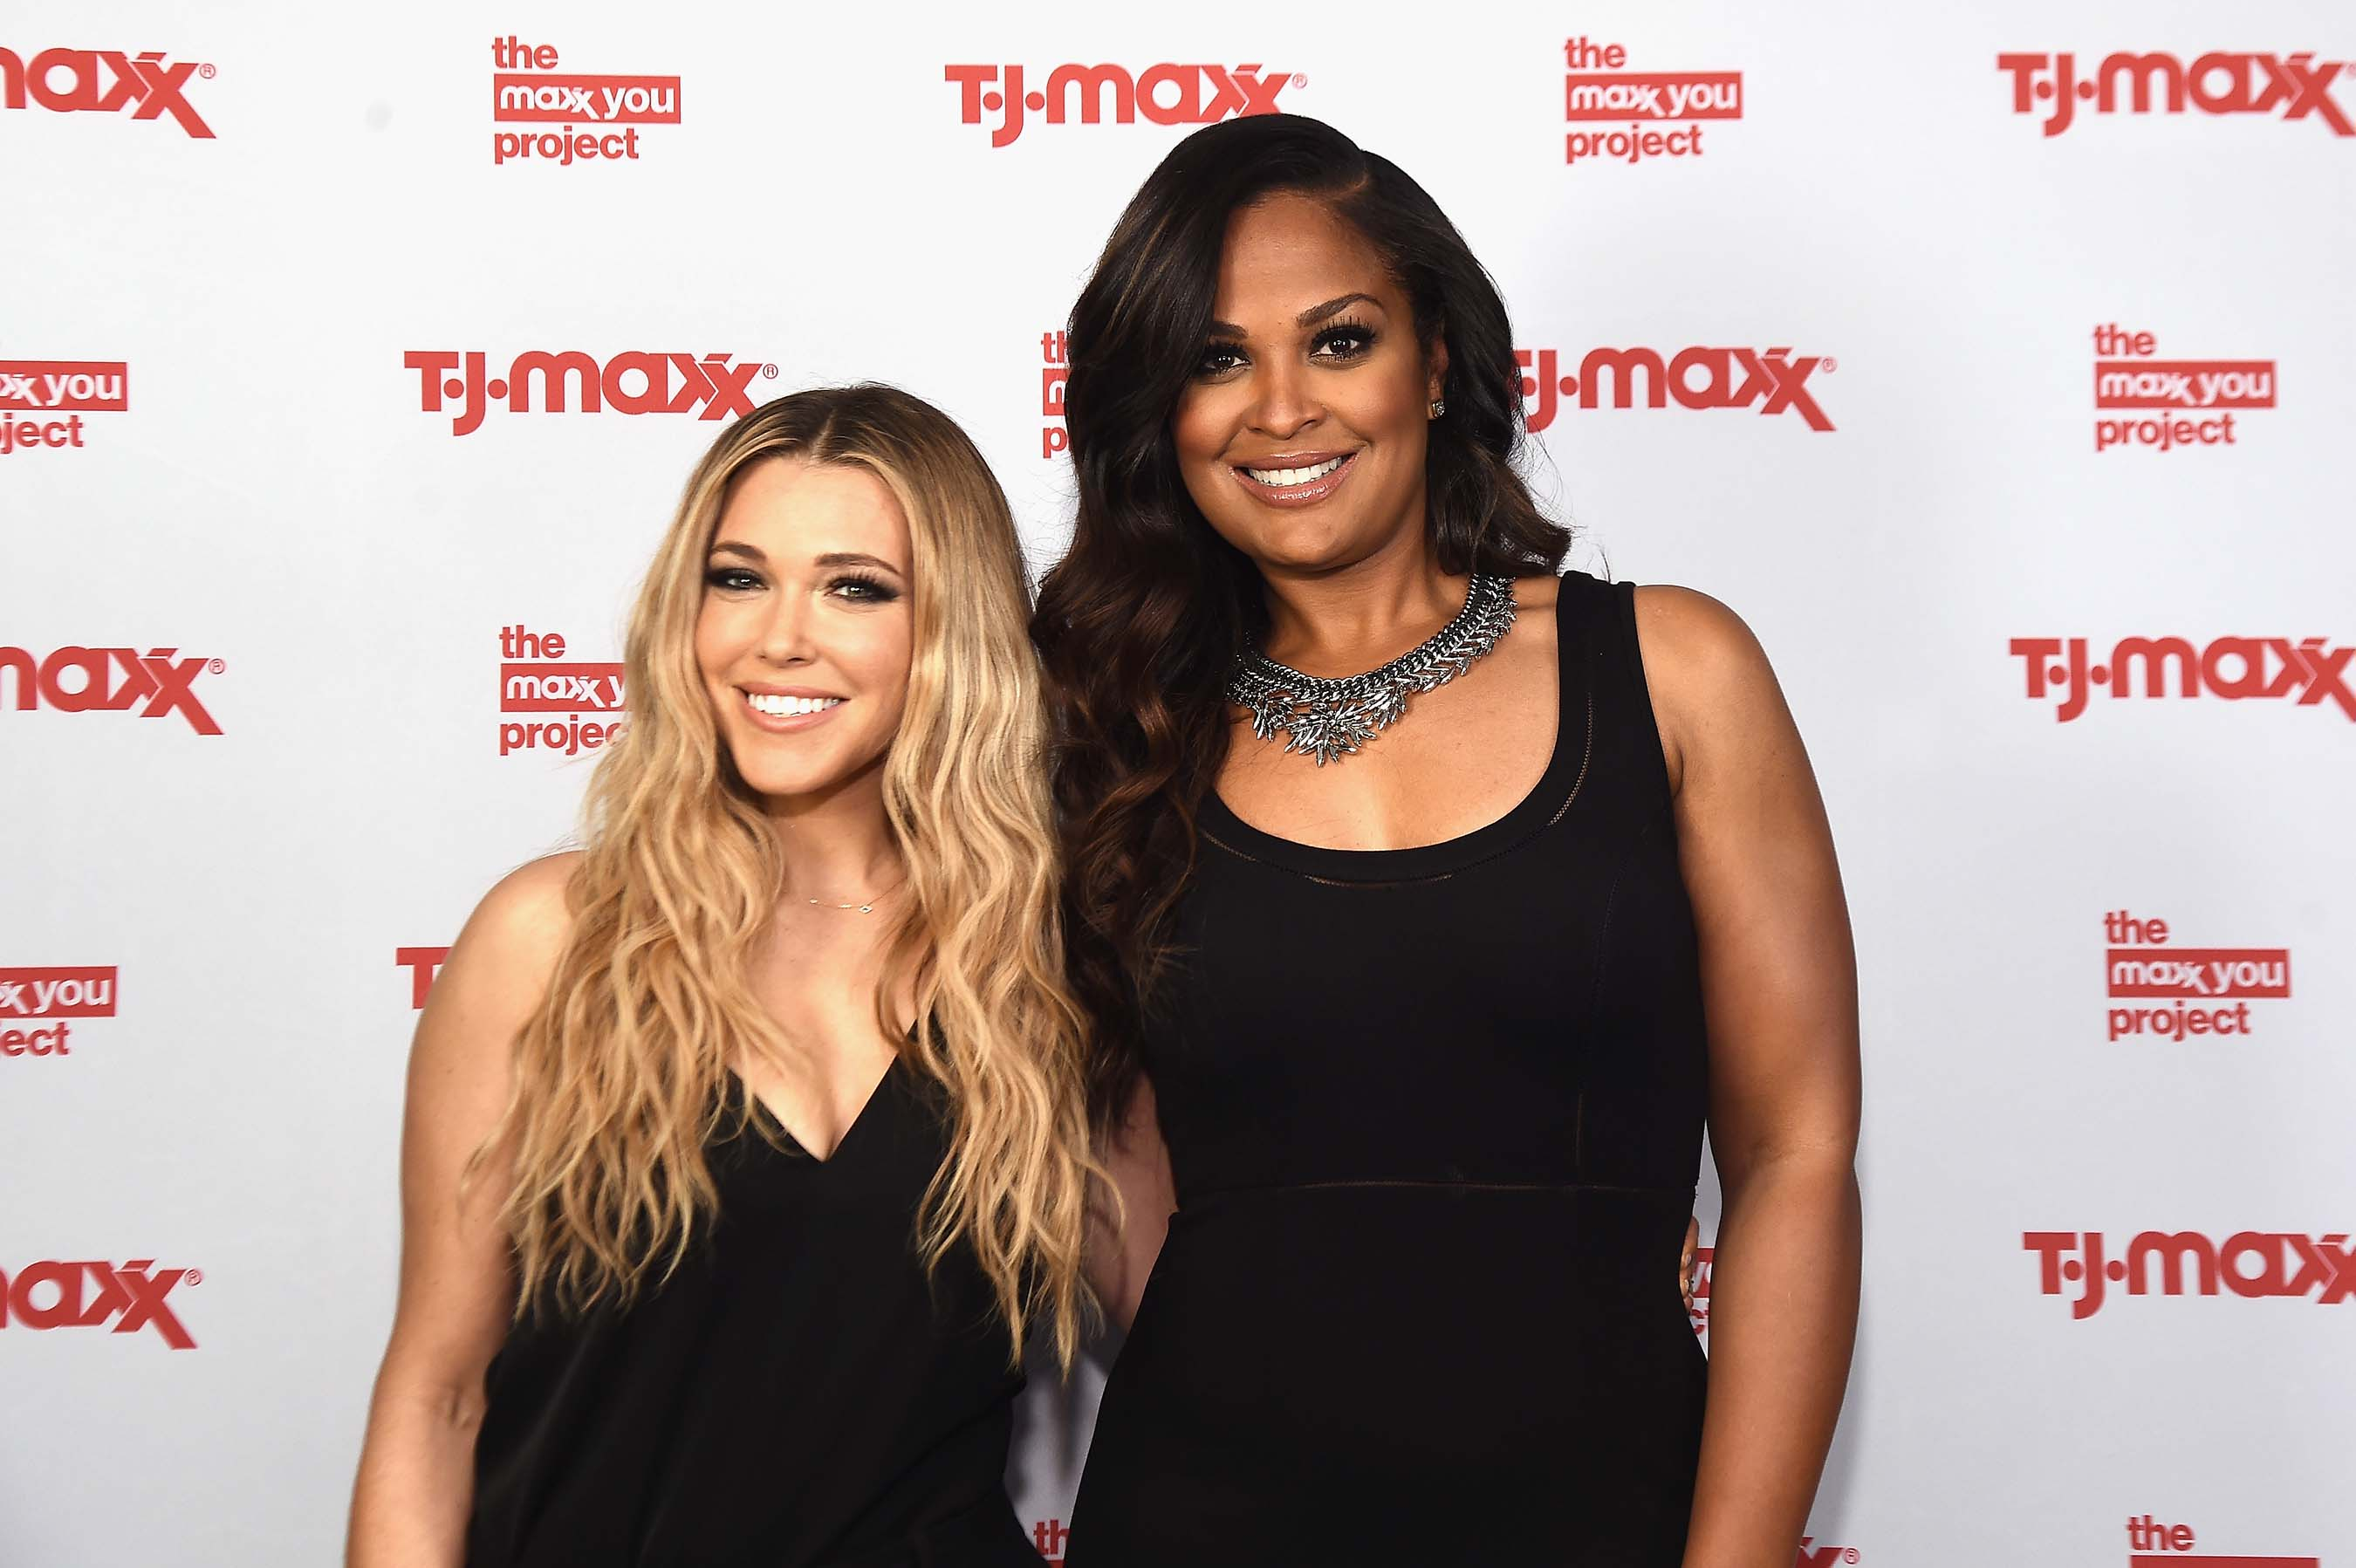 Laila Ali and Rachel Platten kick off The Maxx You Project with T.J.Maxx in New York City